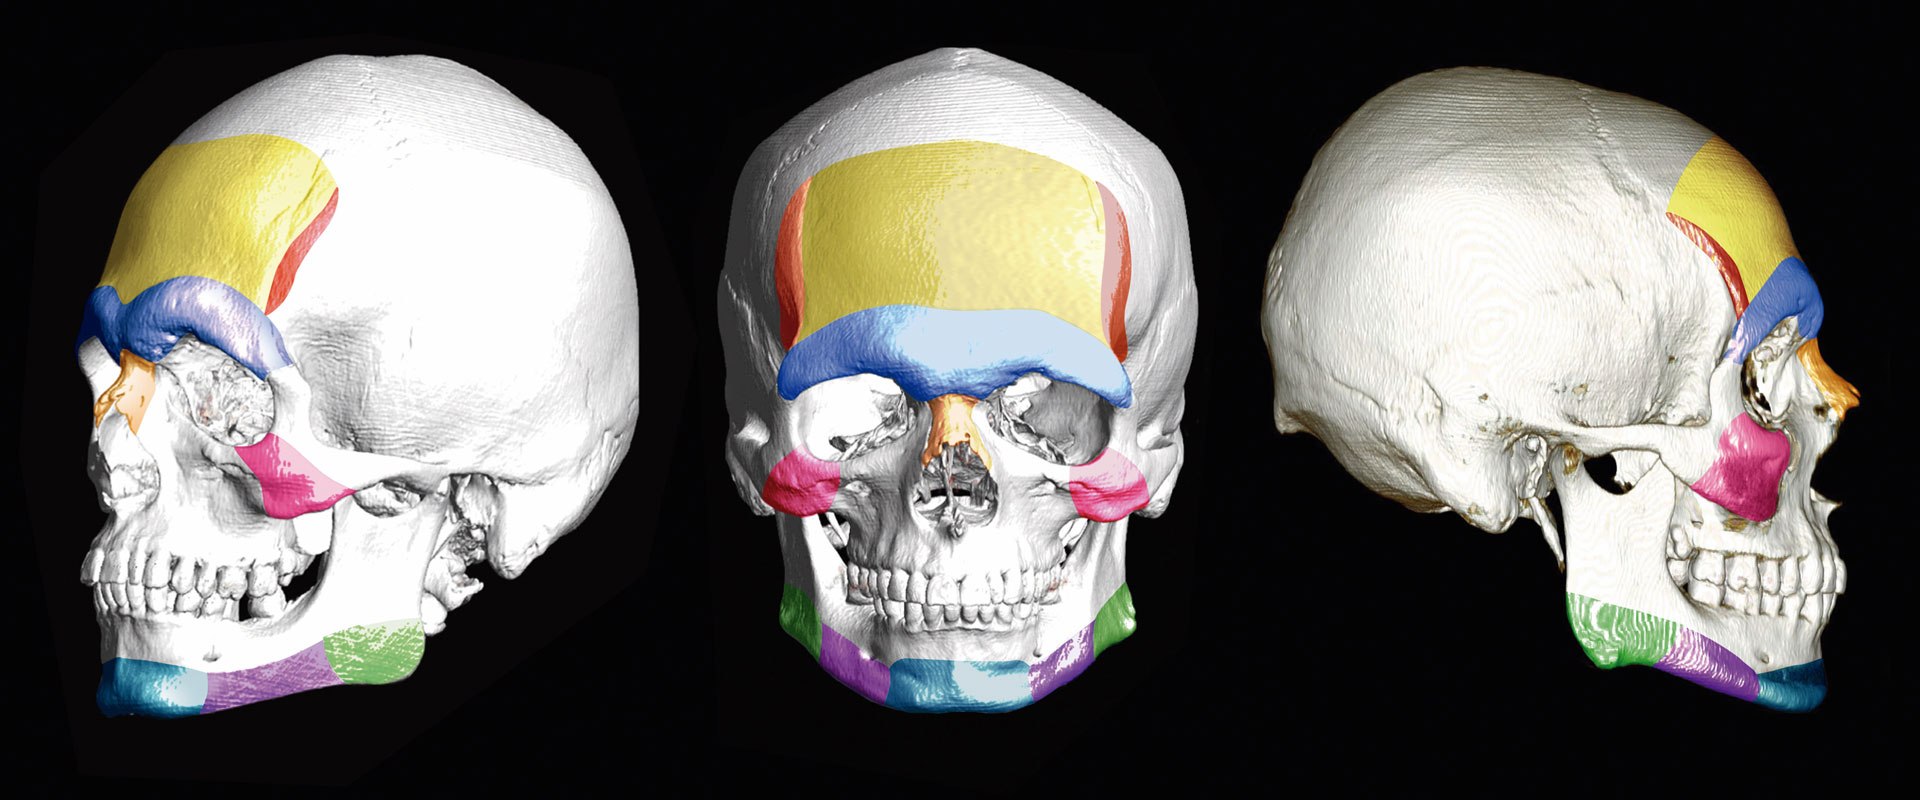 FACIALTEAM | 3D CT Scan